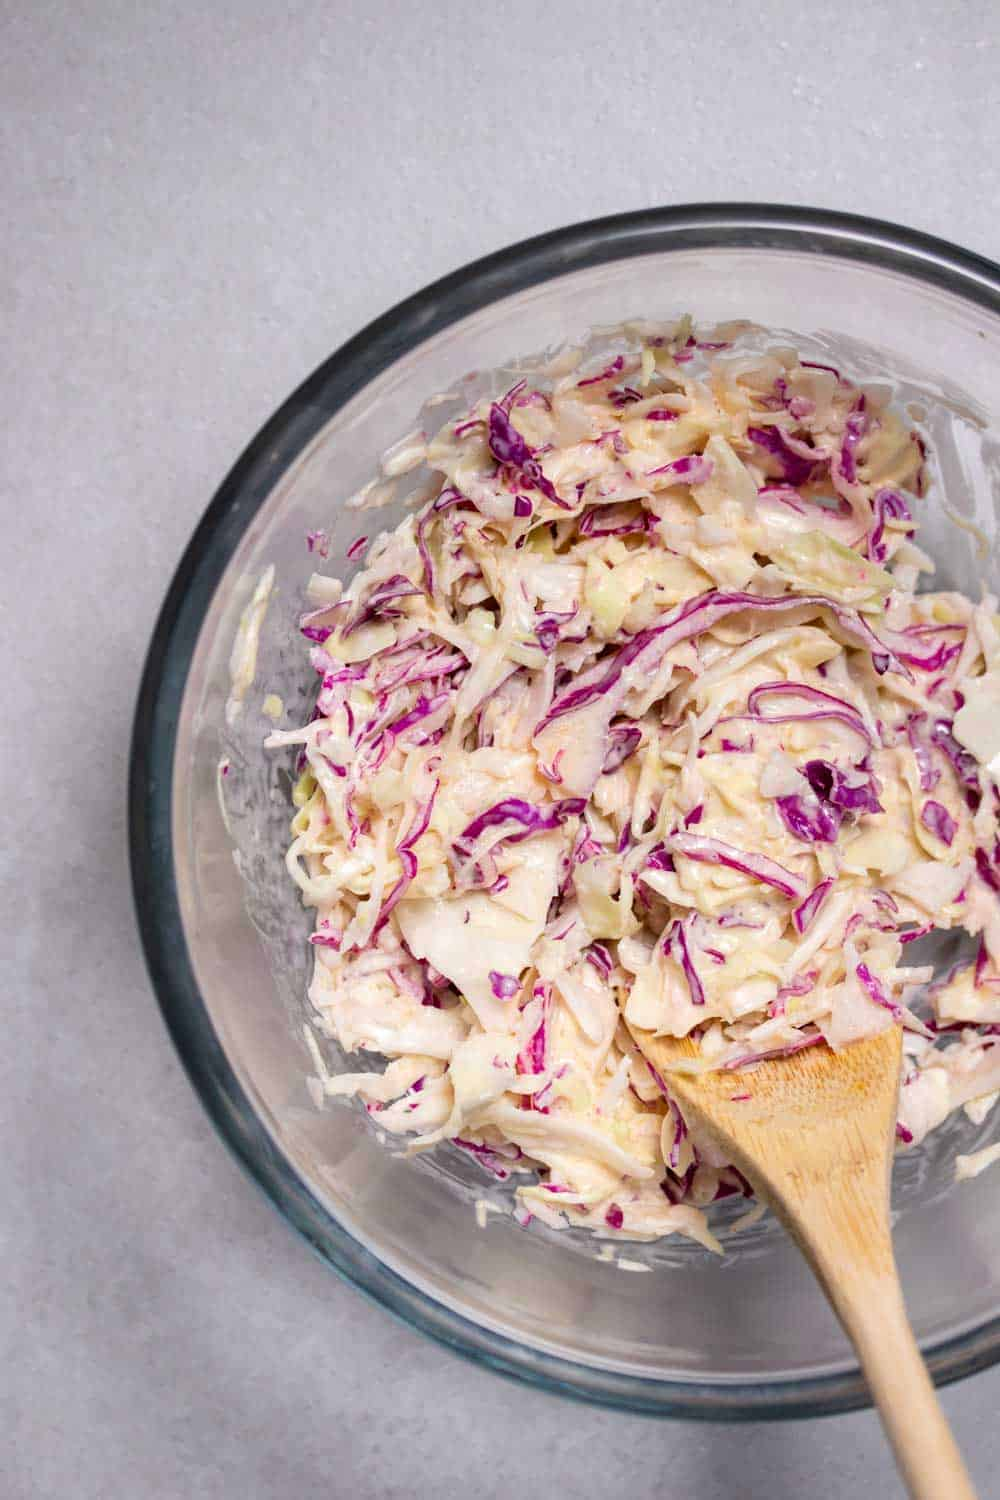 Fresh coleslaw made from scratch for the sloppy joes